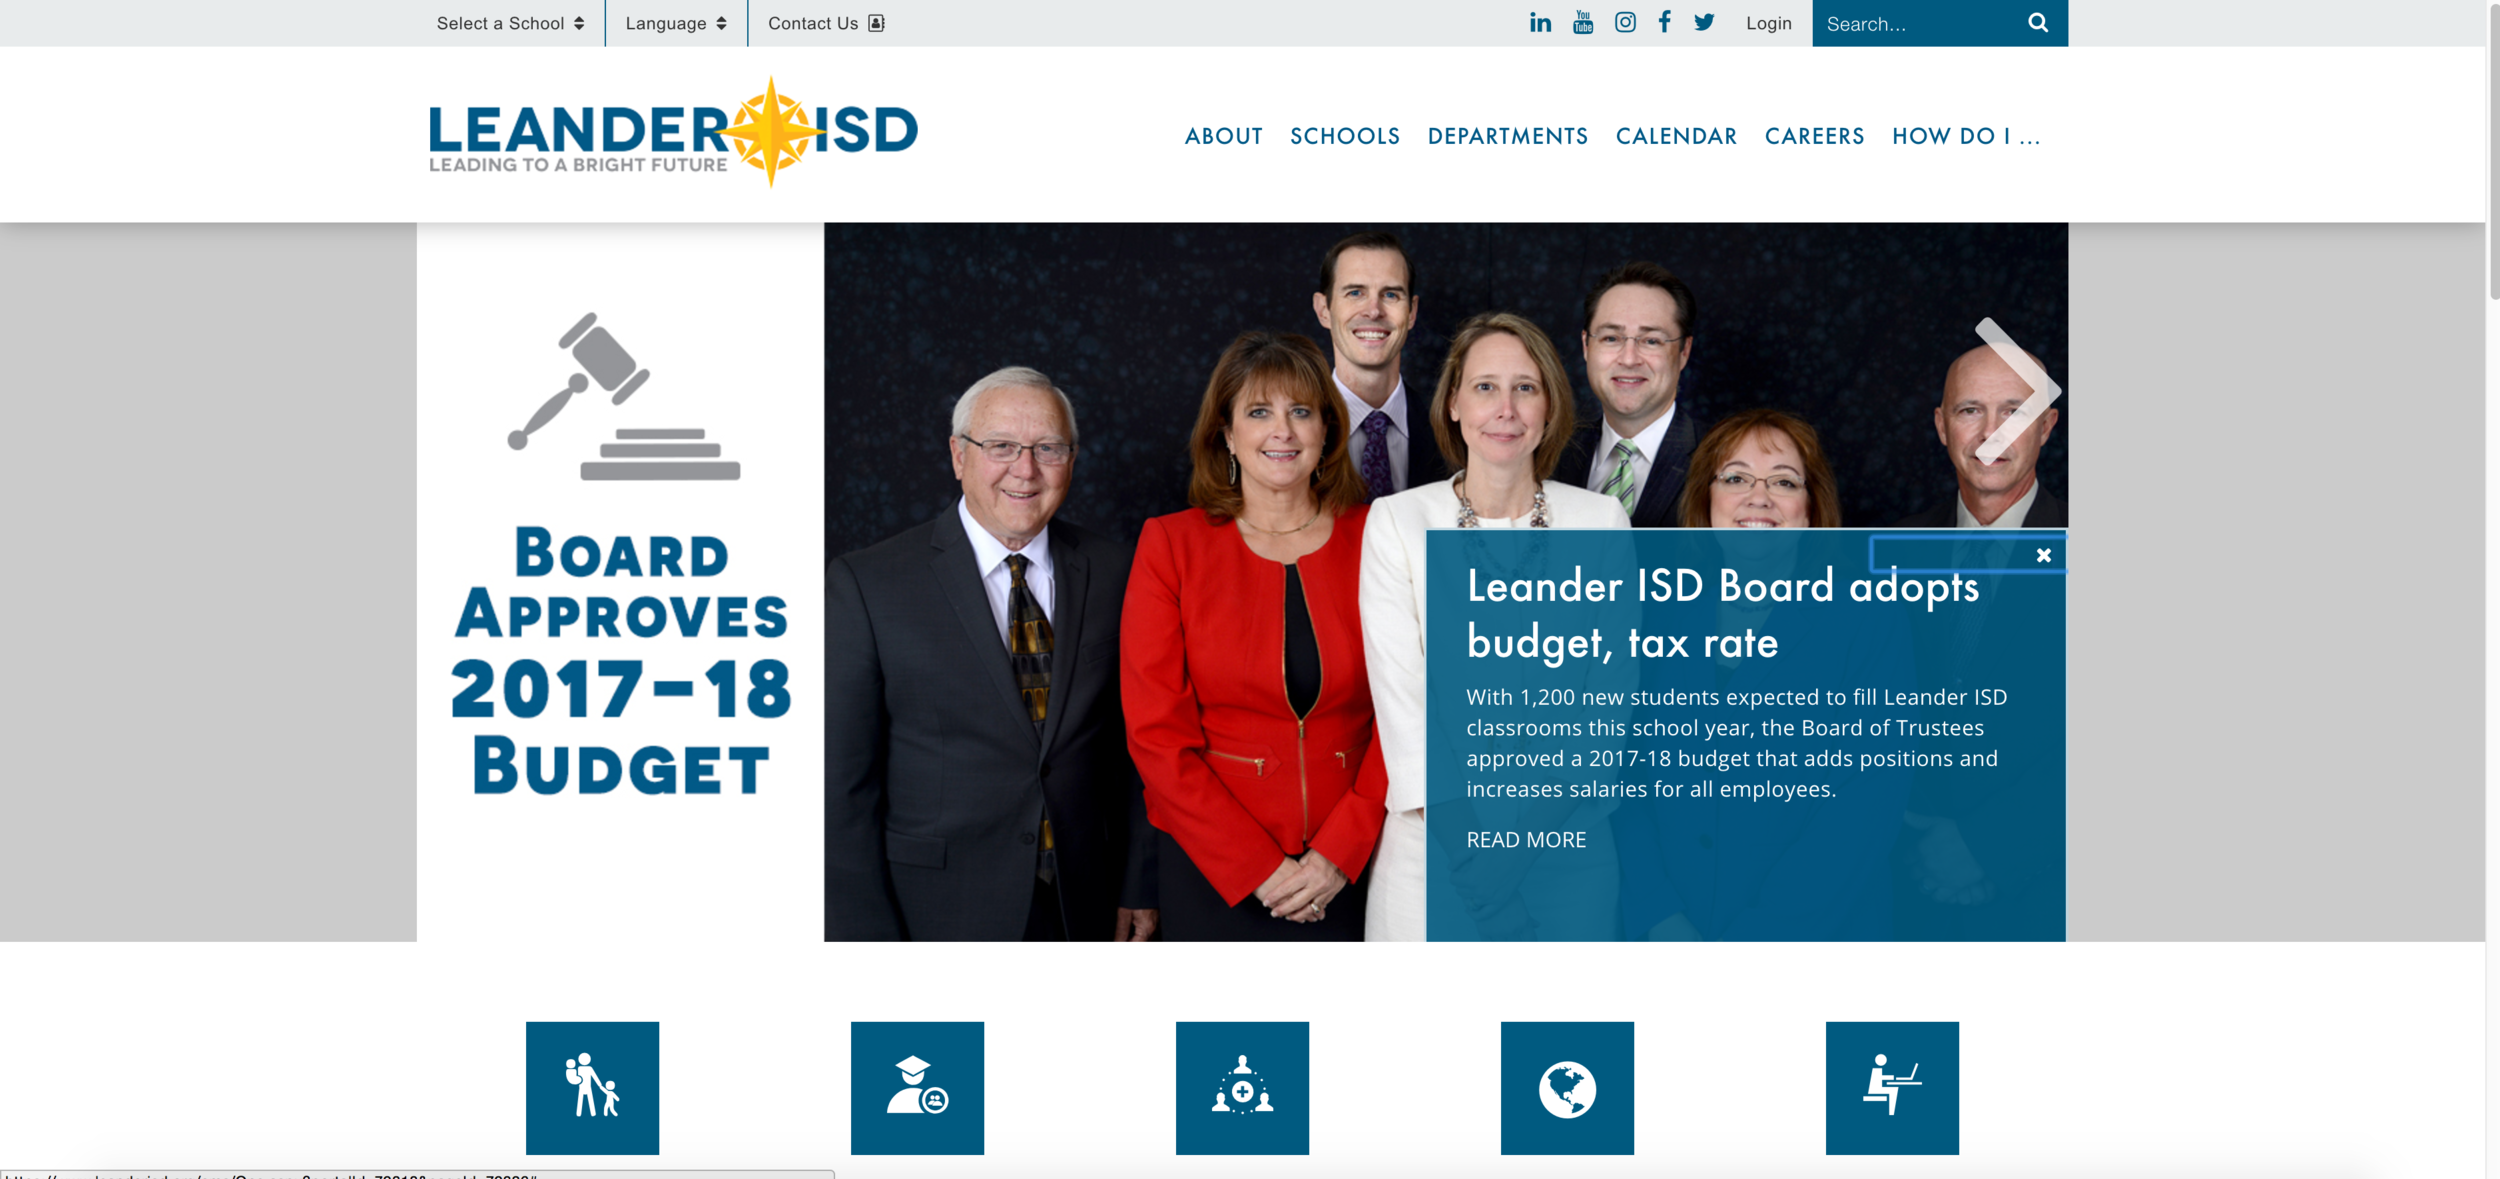 Visit the Leander ISD website here: https://www.leanderisd.org/